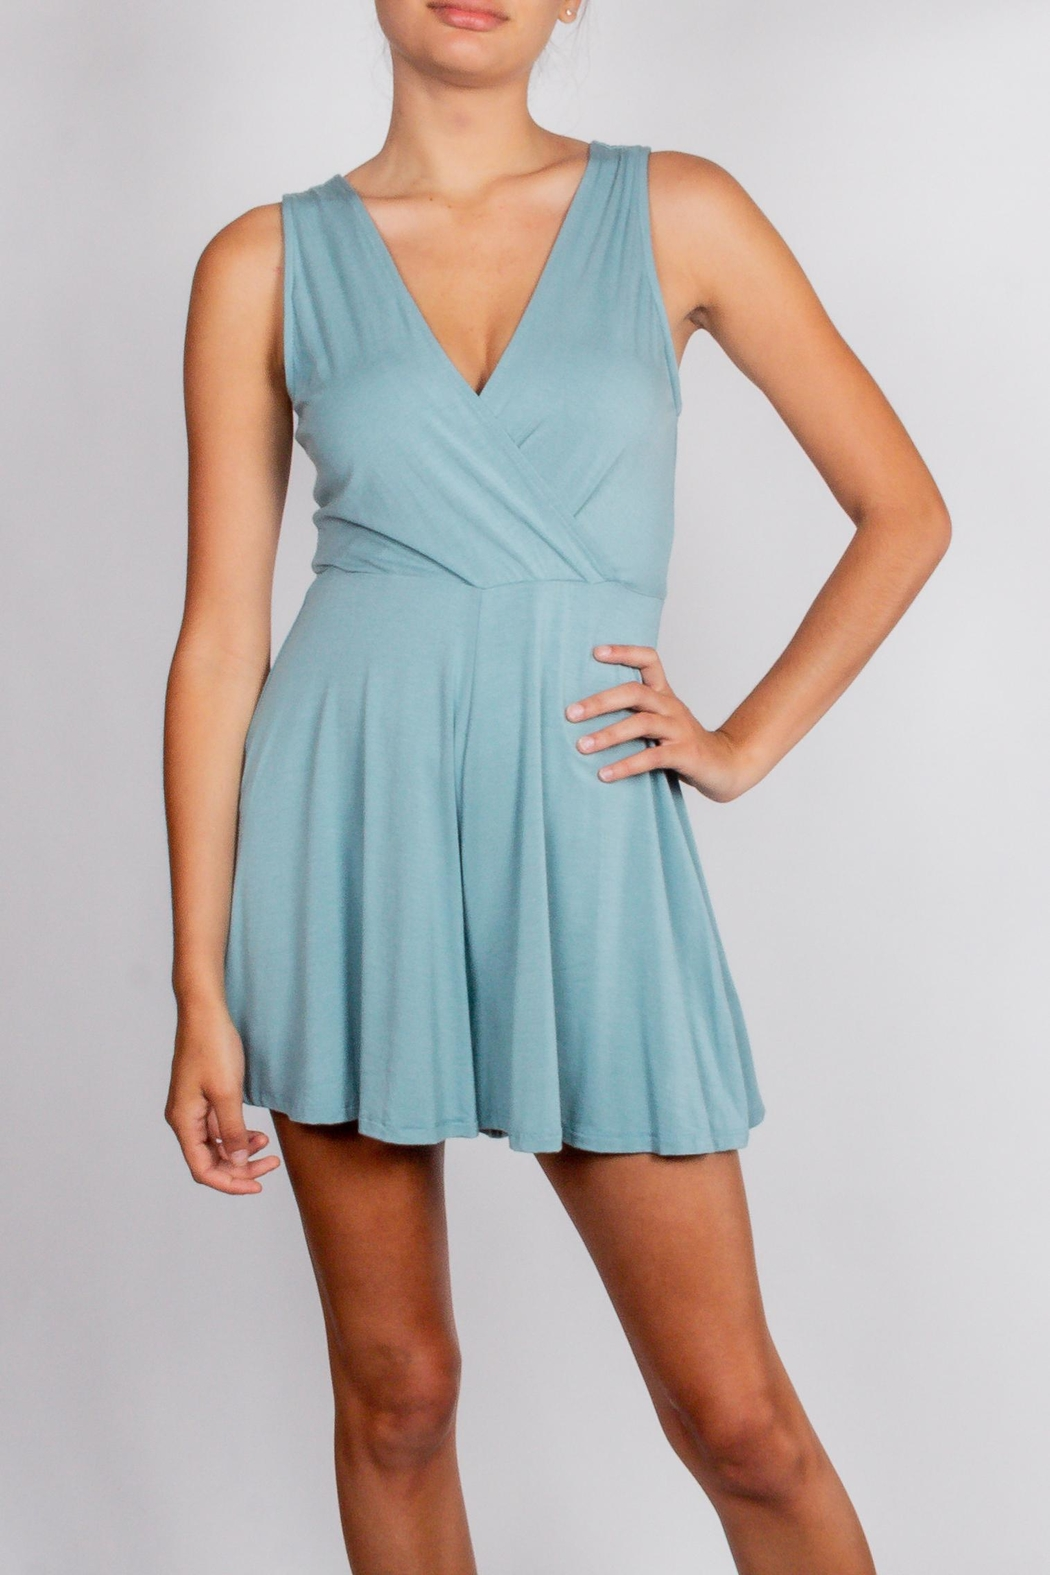 Final Touch Teal Wrap Romper - Main Image